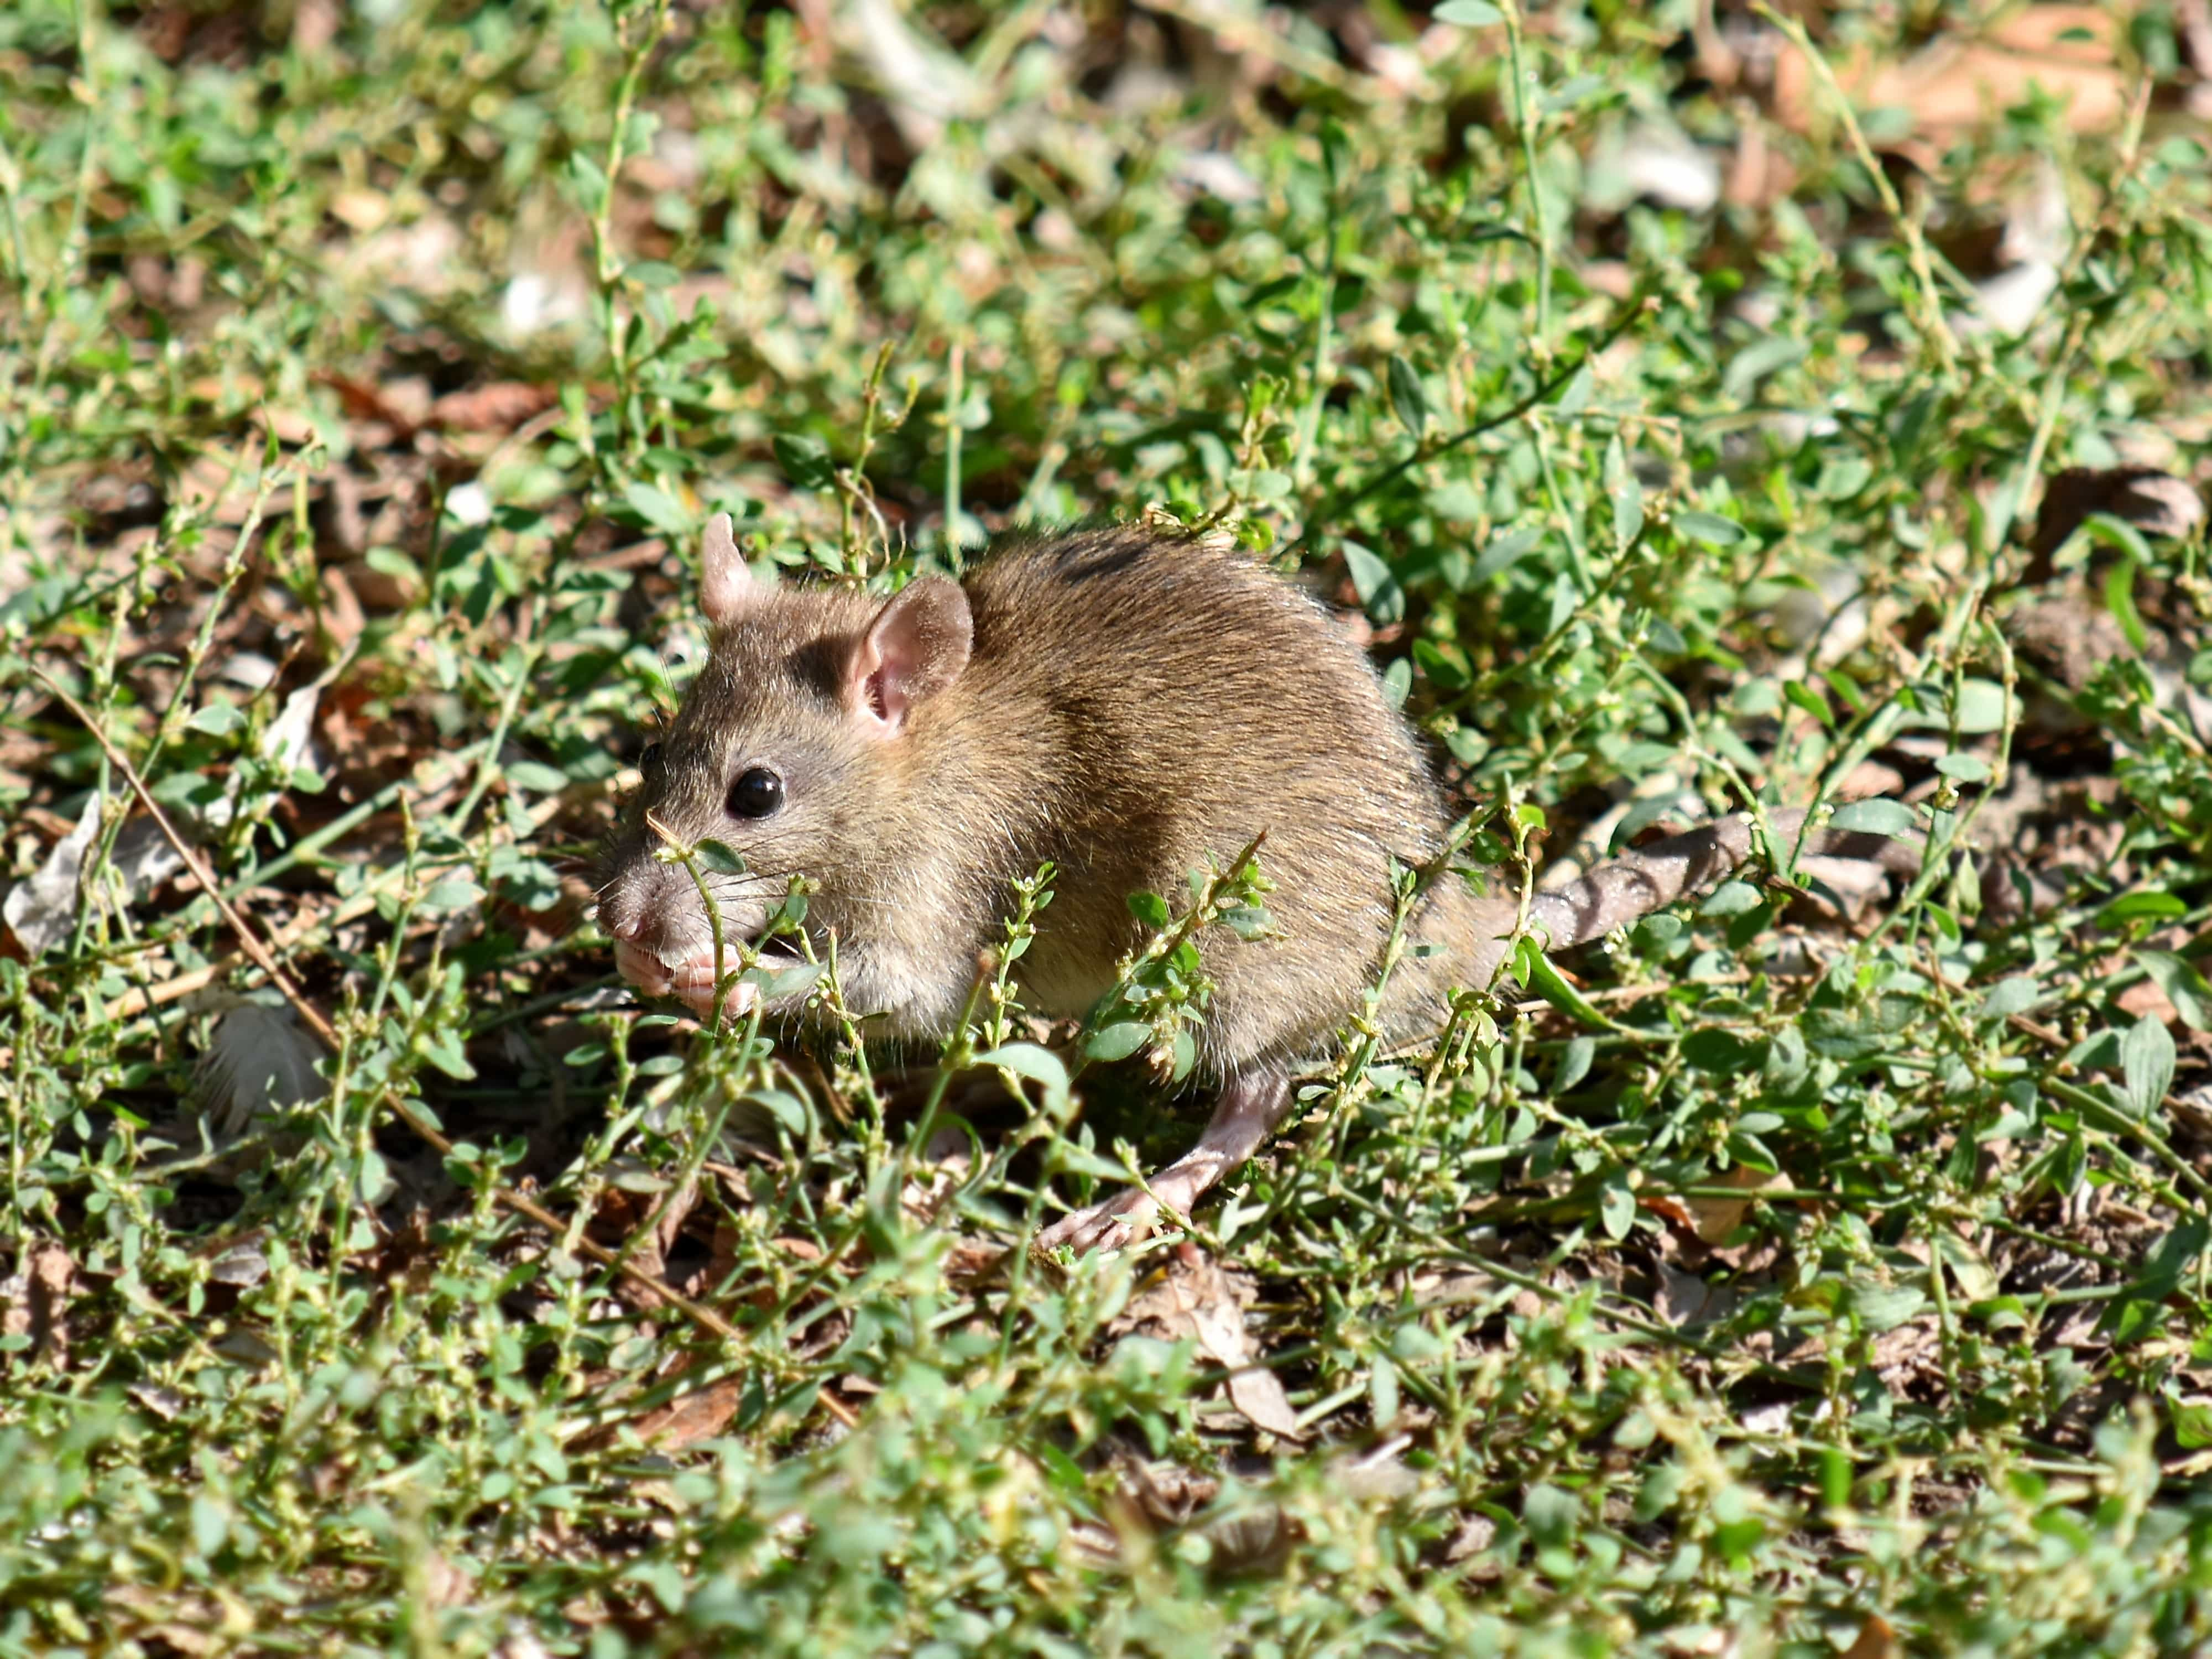 Free picture: mouse, wild, rodent, nature, wildlife, animal, grass, outdoors, fur, cute